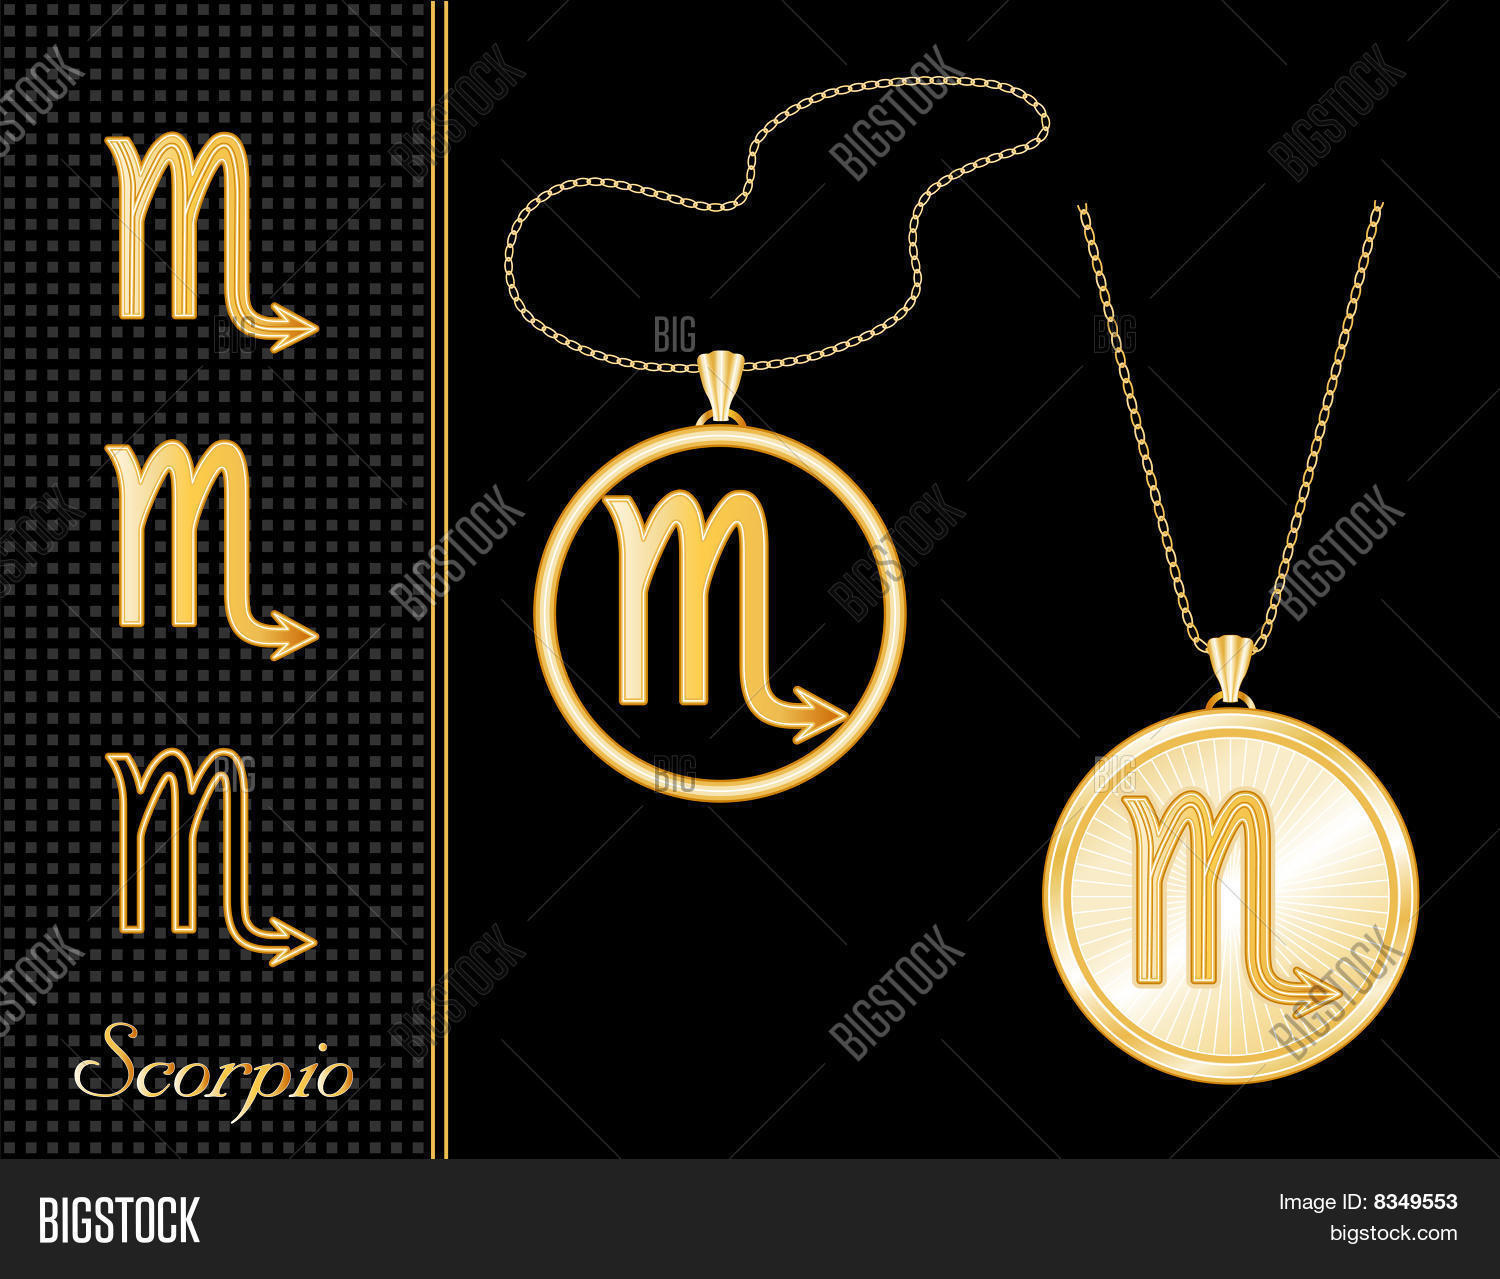 products tiffany necklaces the jewelry scorpio necklace enlarged pendant and medallion co